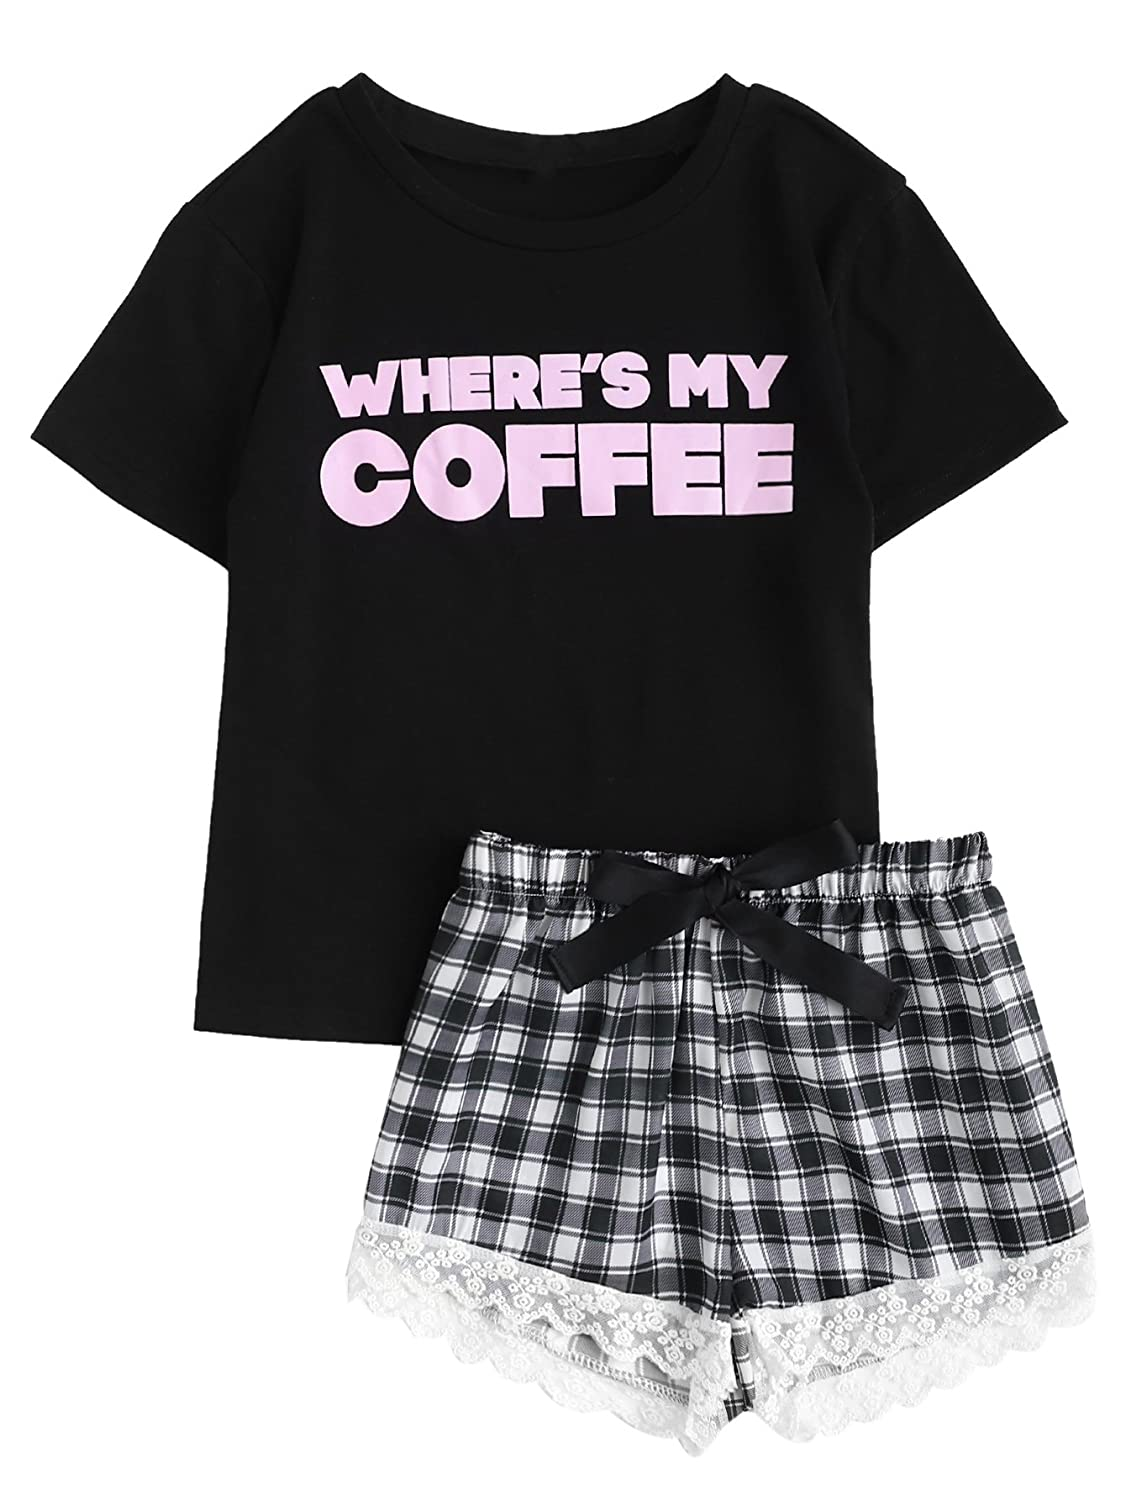 Blackplaid DIDK Women's Cute Cartoon Print Tee and Shorts Pajama Set